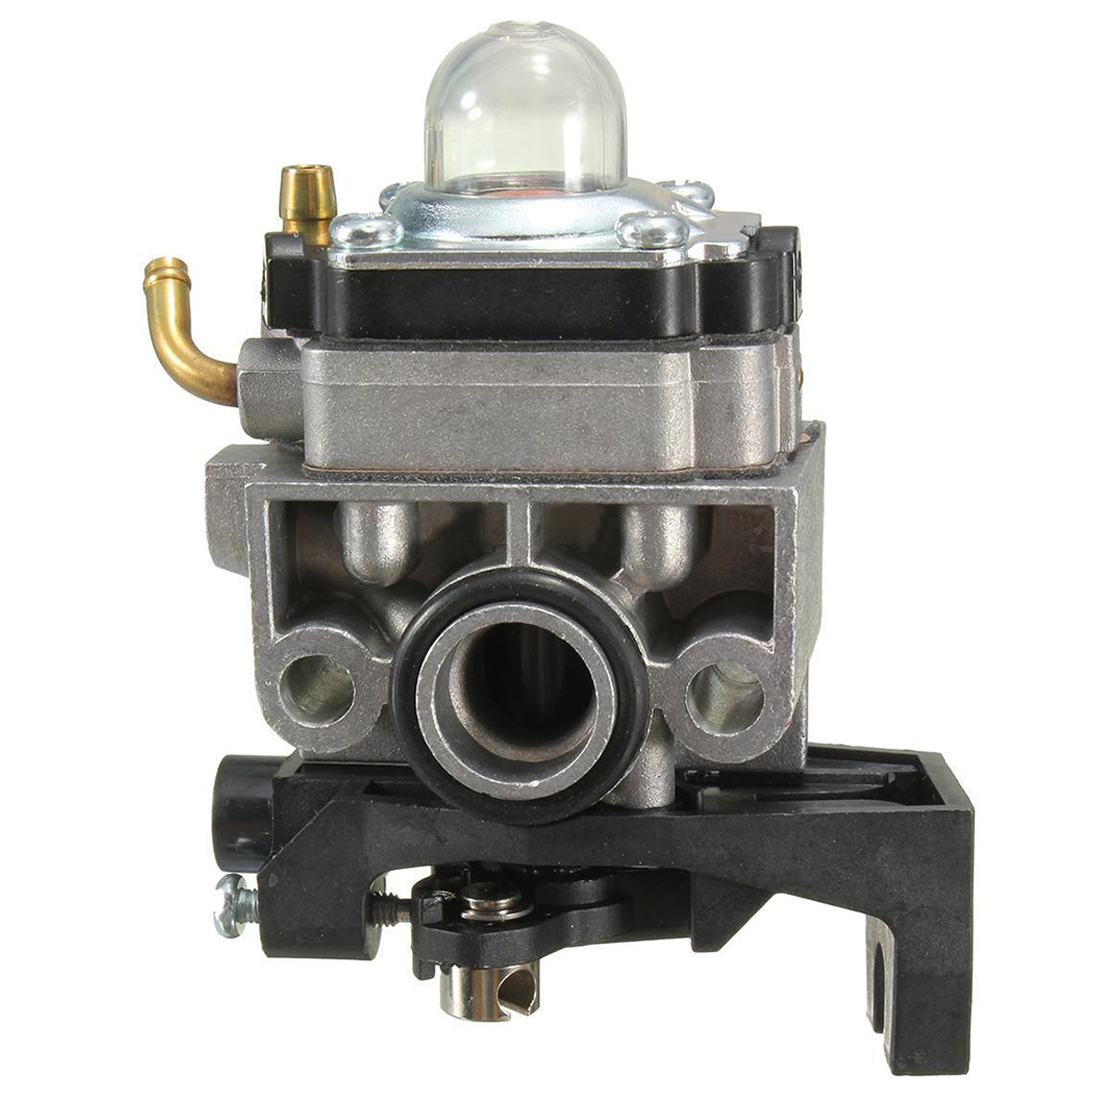 Carburetor For Honda GX25 GX25N & NT FG110 &K1 Engine Motor 16100-Z0H-825 Silver blackCarburetor For Honda GX25 GX25N & NT FG110 &K1 Engine Motor 16100-Z0H-825 Silver black